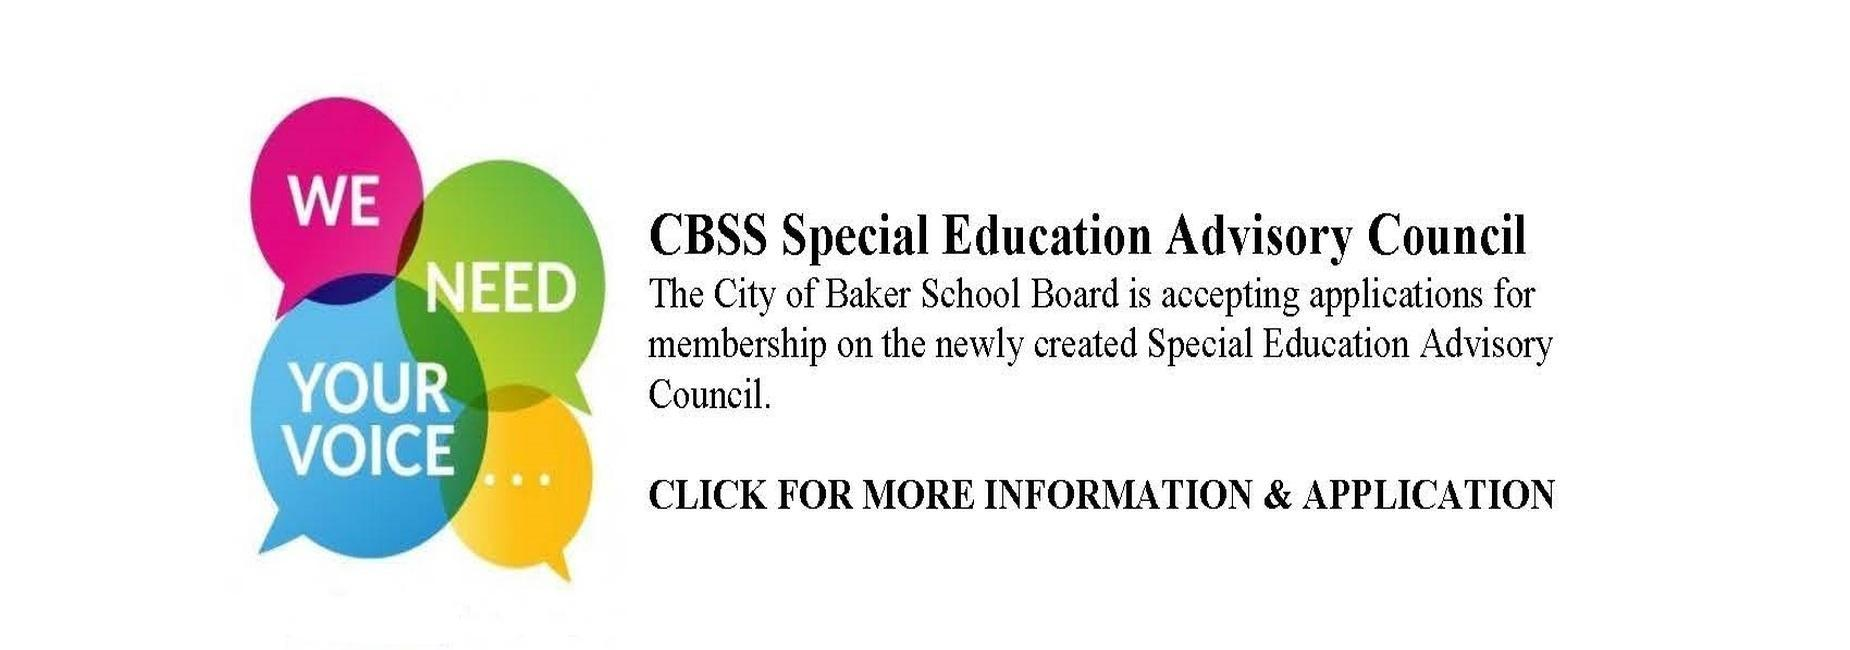 a photo ad for the Special Education Advisory Council